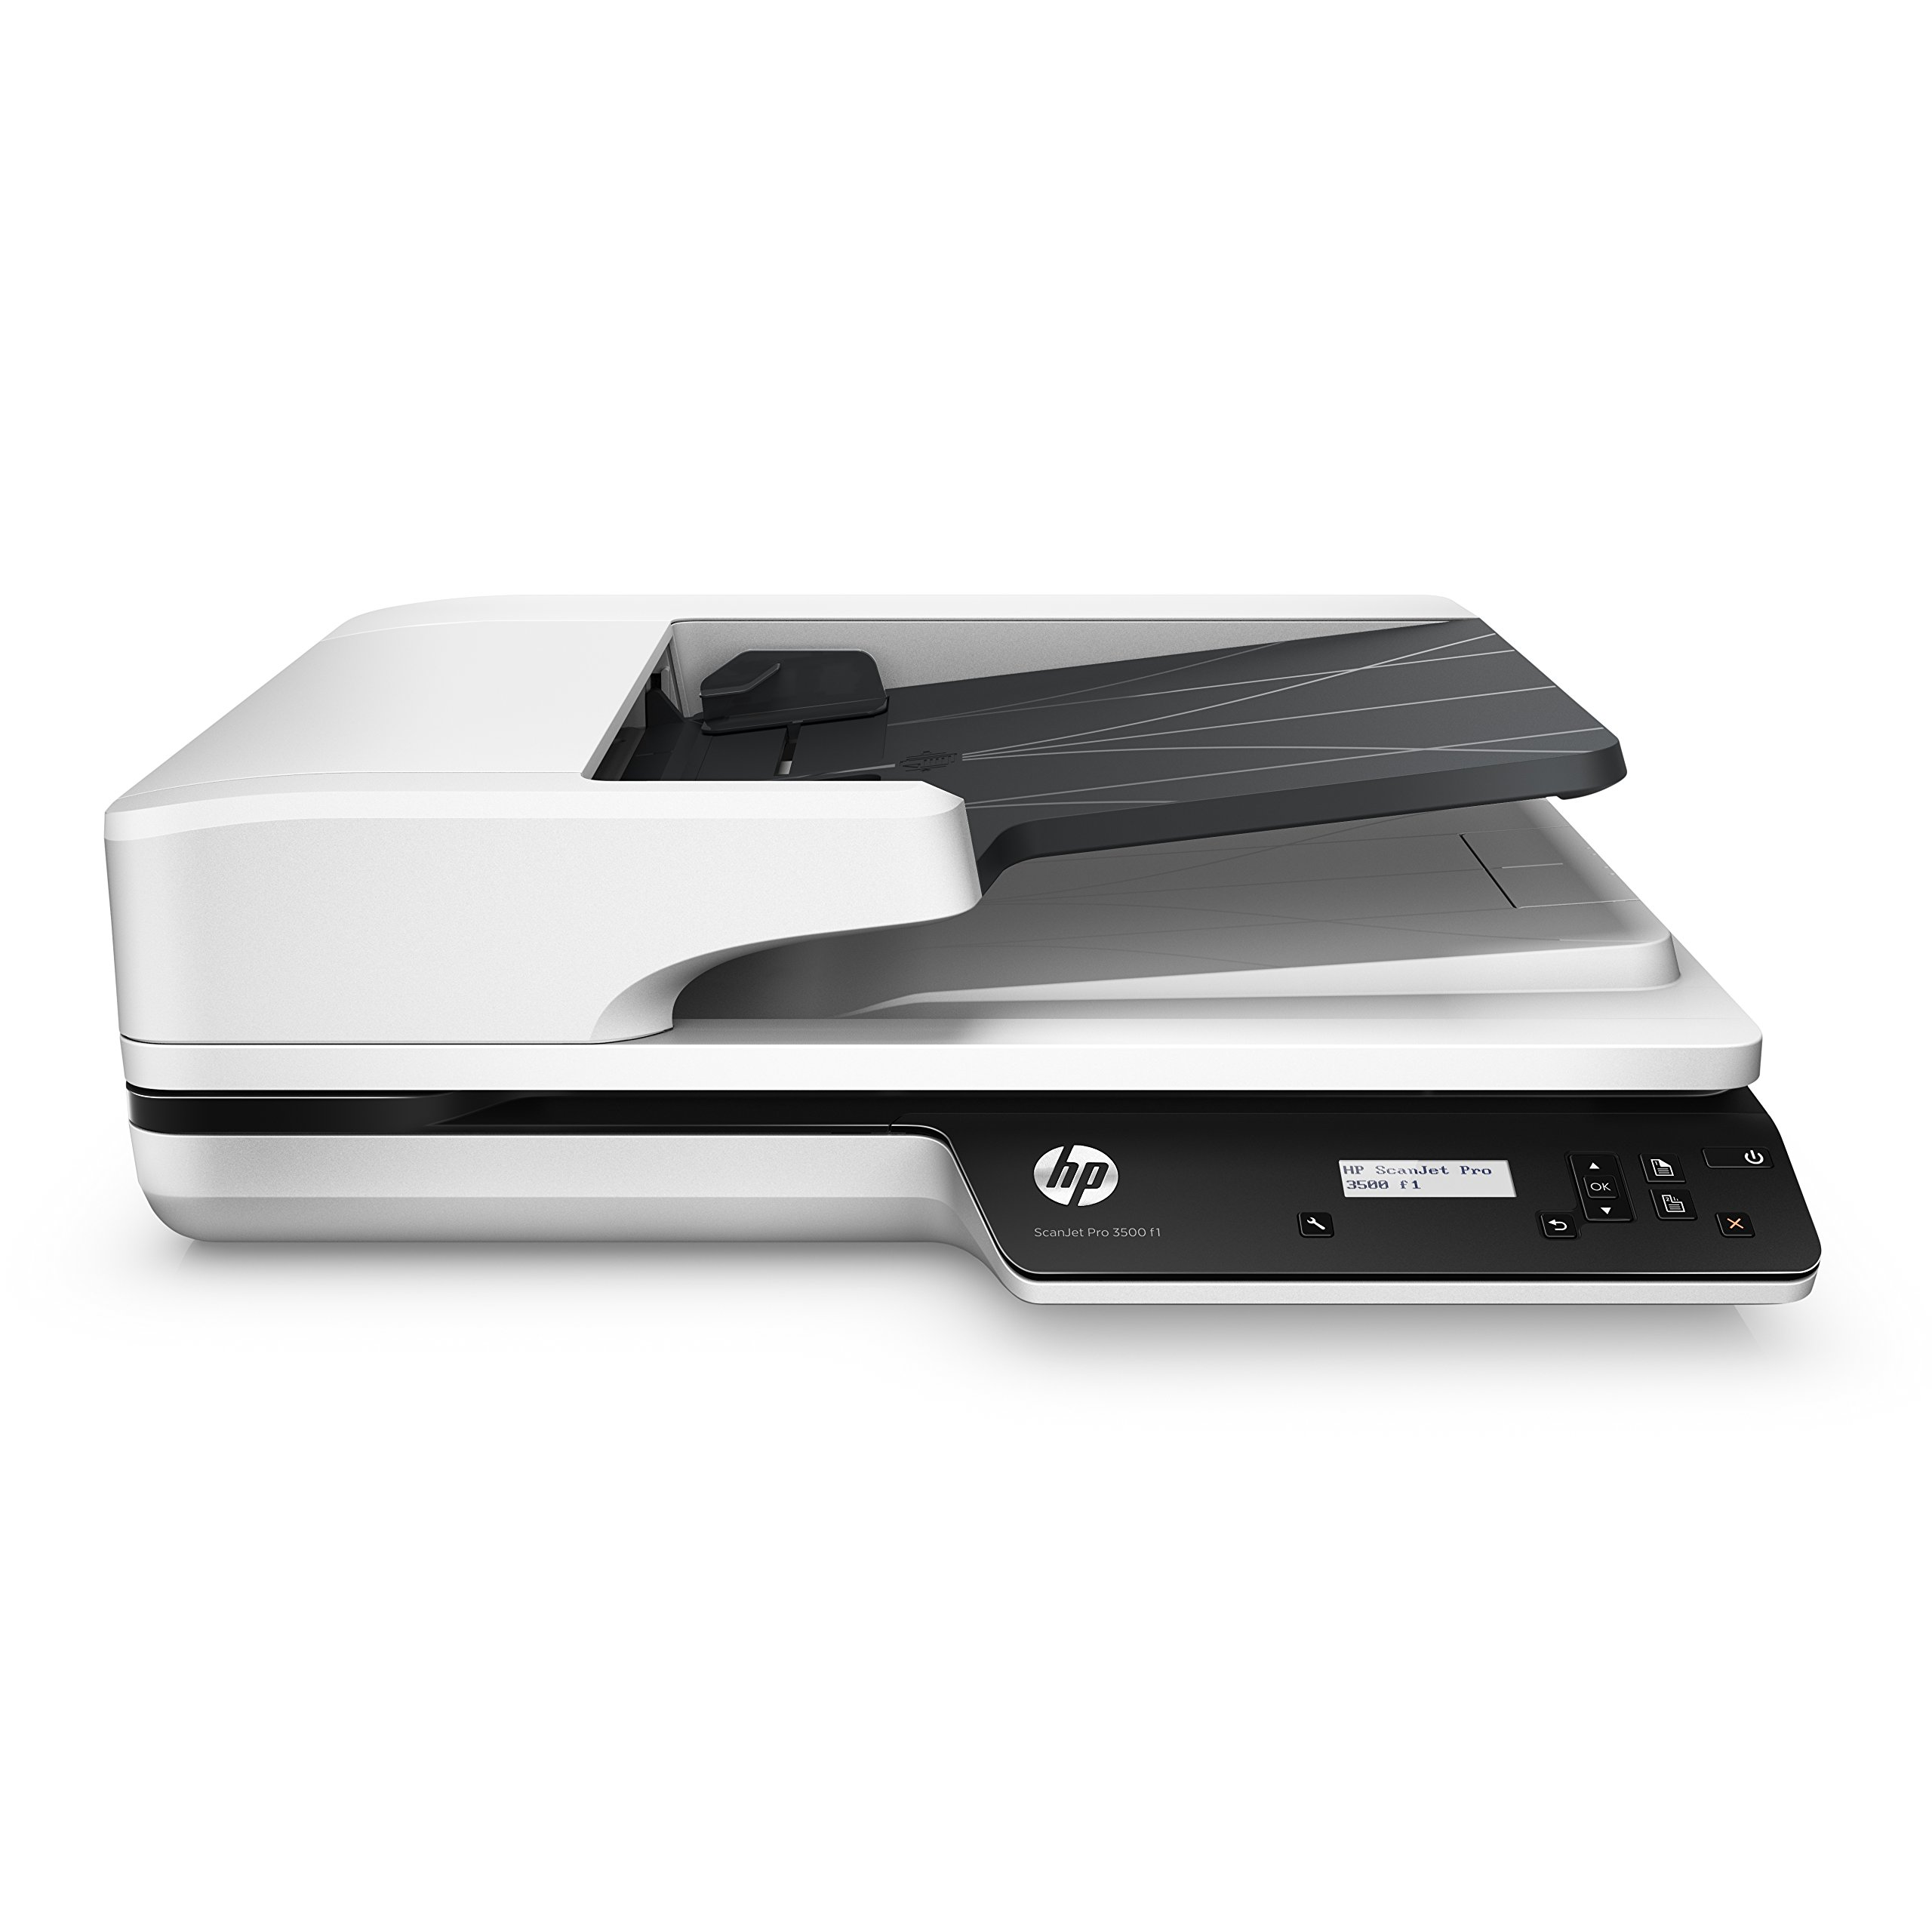 HP ScanJet Pro 3500 f1 Flatbed OCR Scanner by HP